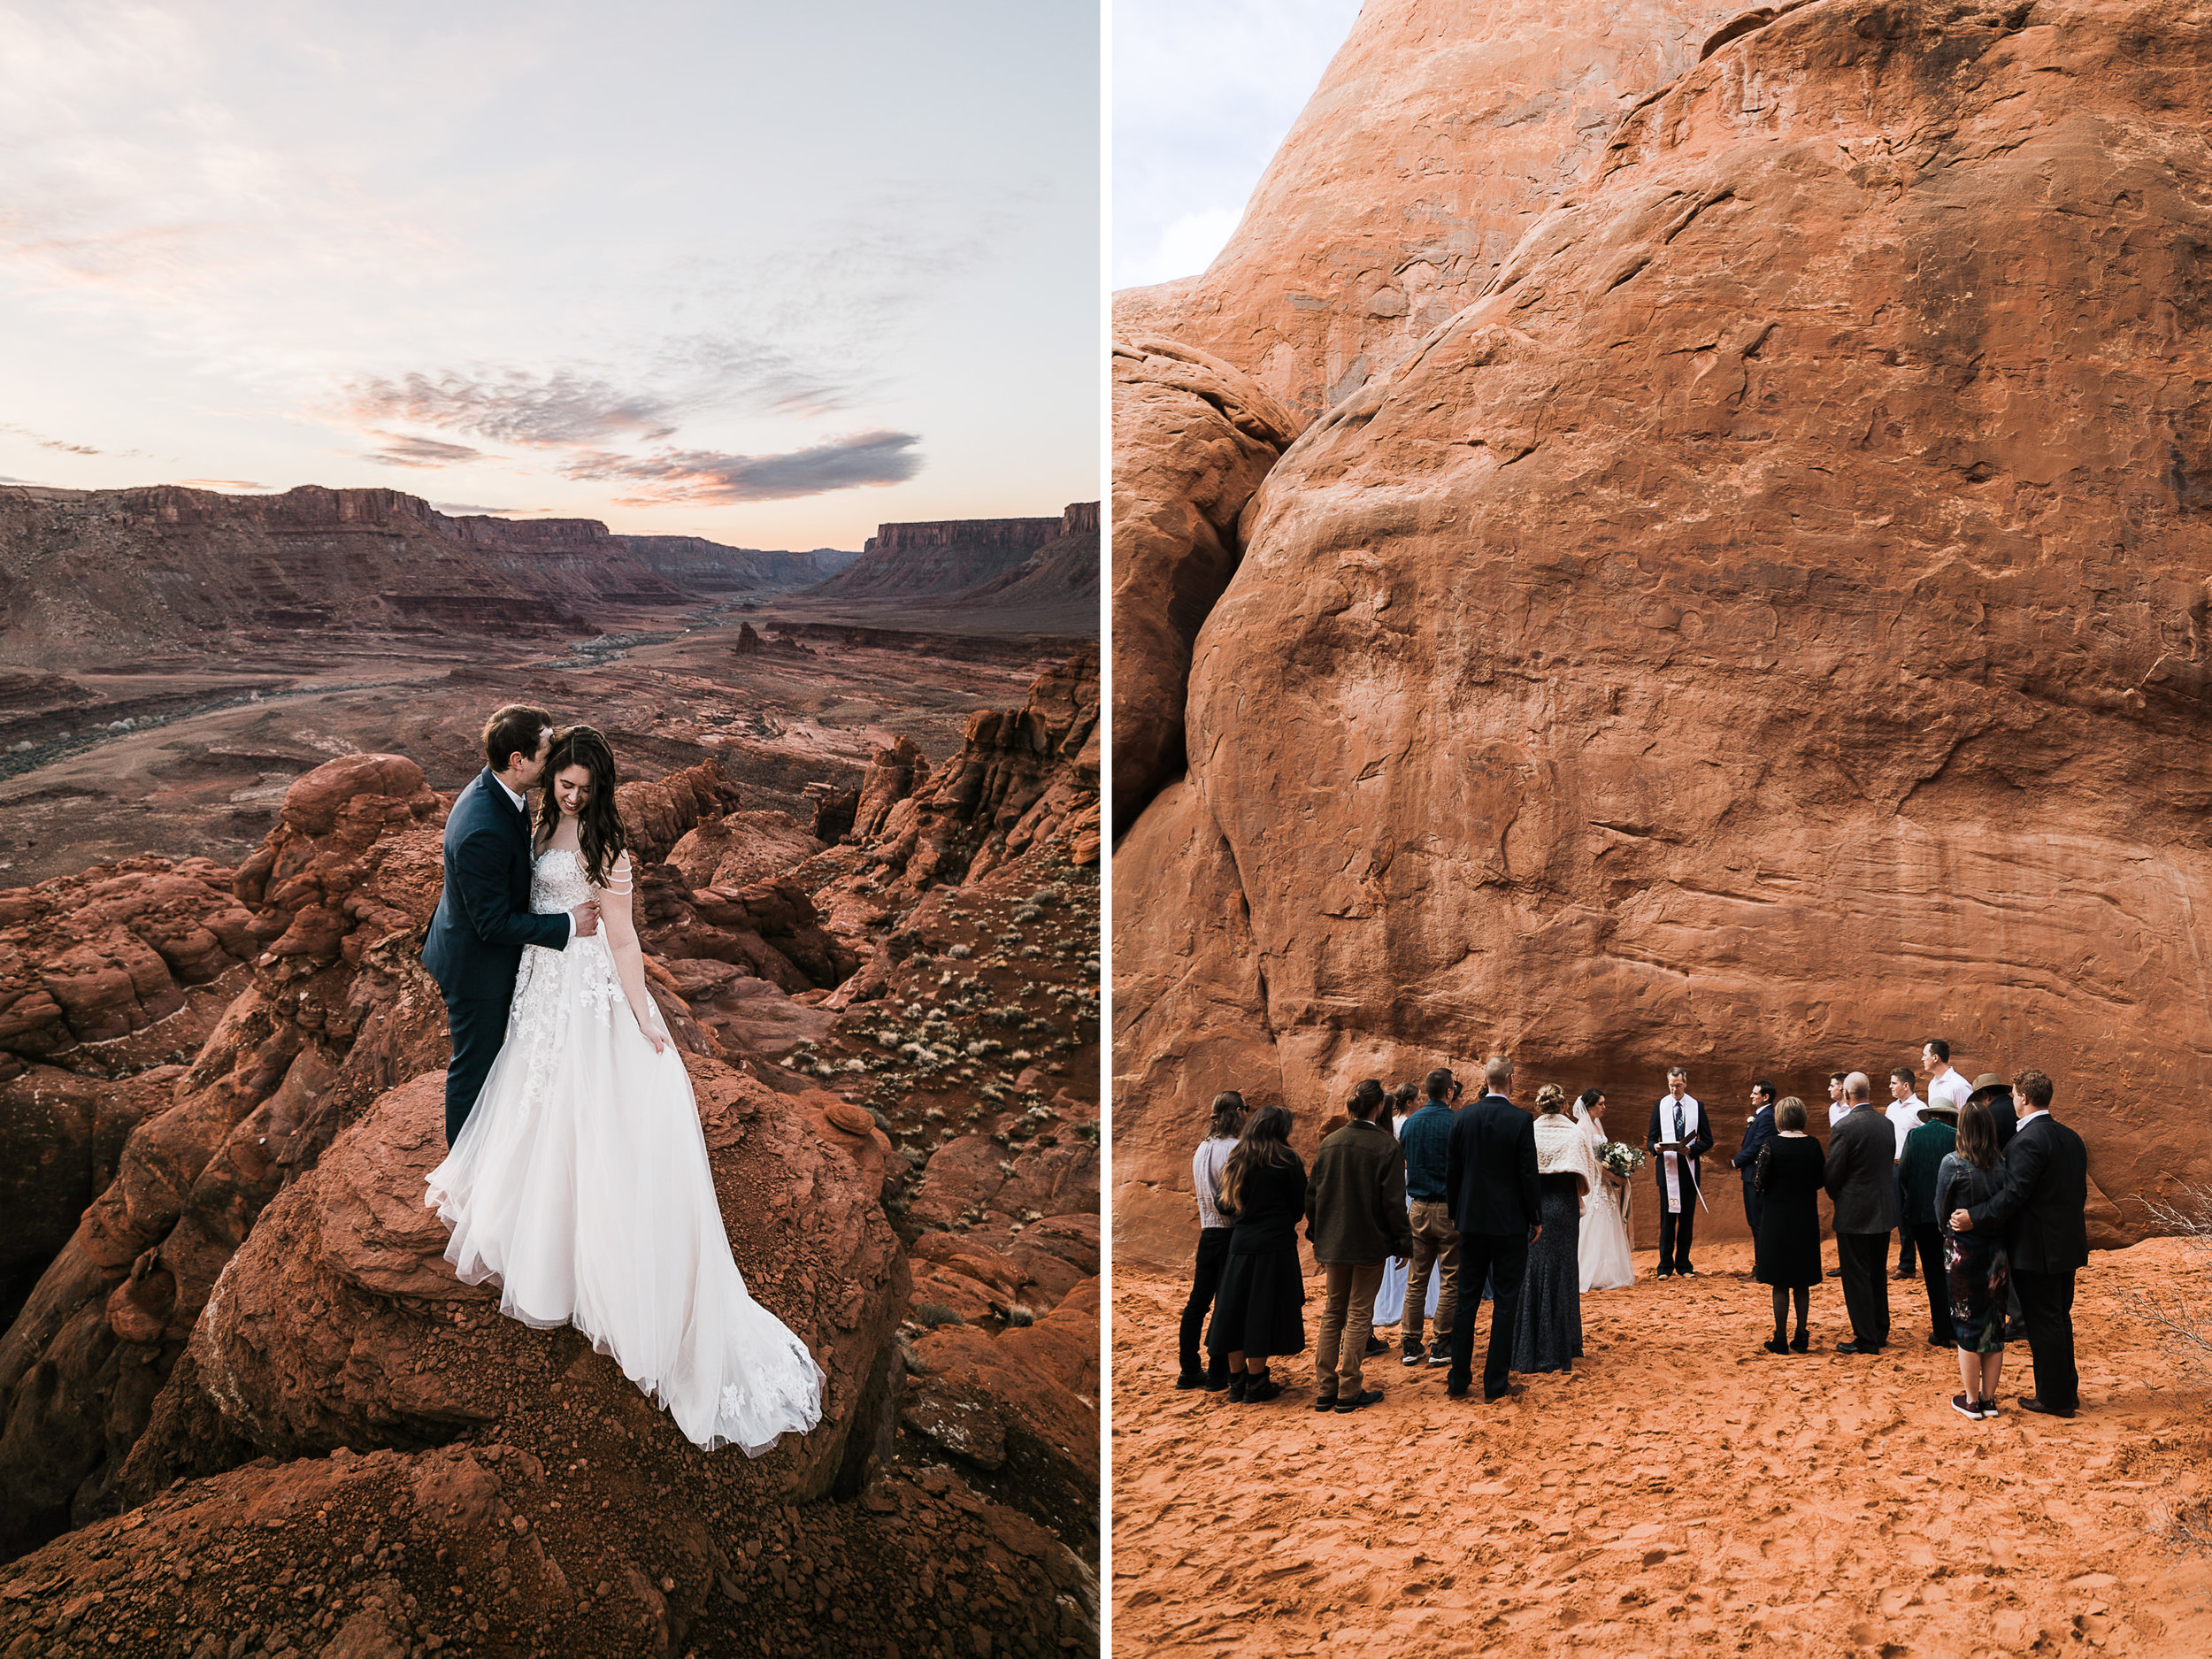 We loved shooting this small wedding in Arches National Park. The ceremony at Sand Arch was the perfect Moab venue for this couple!